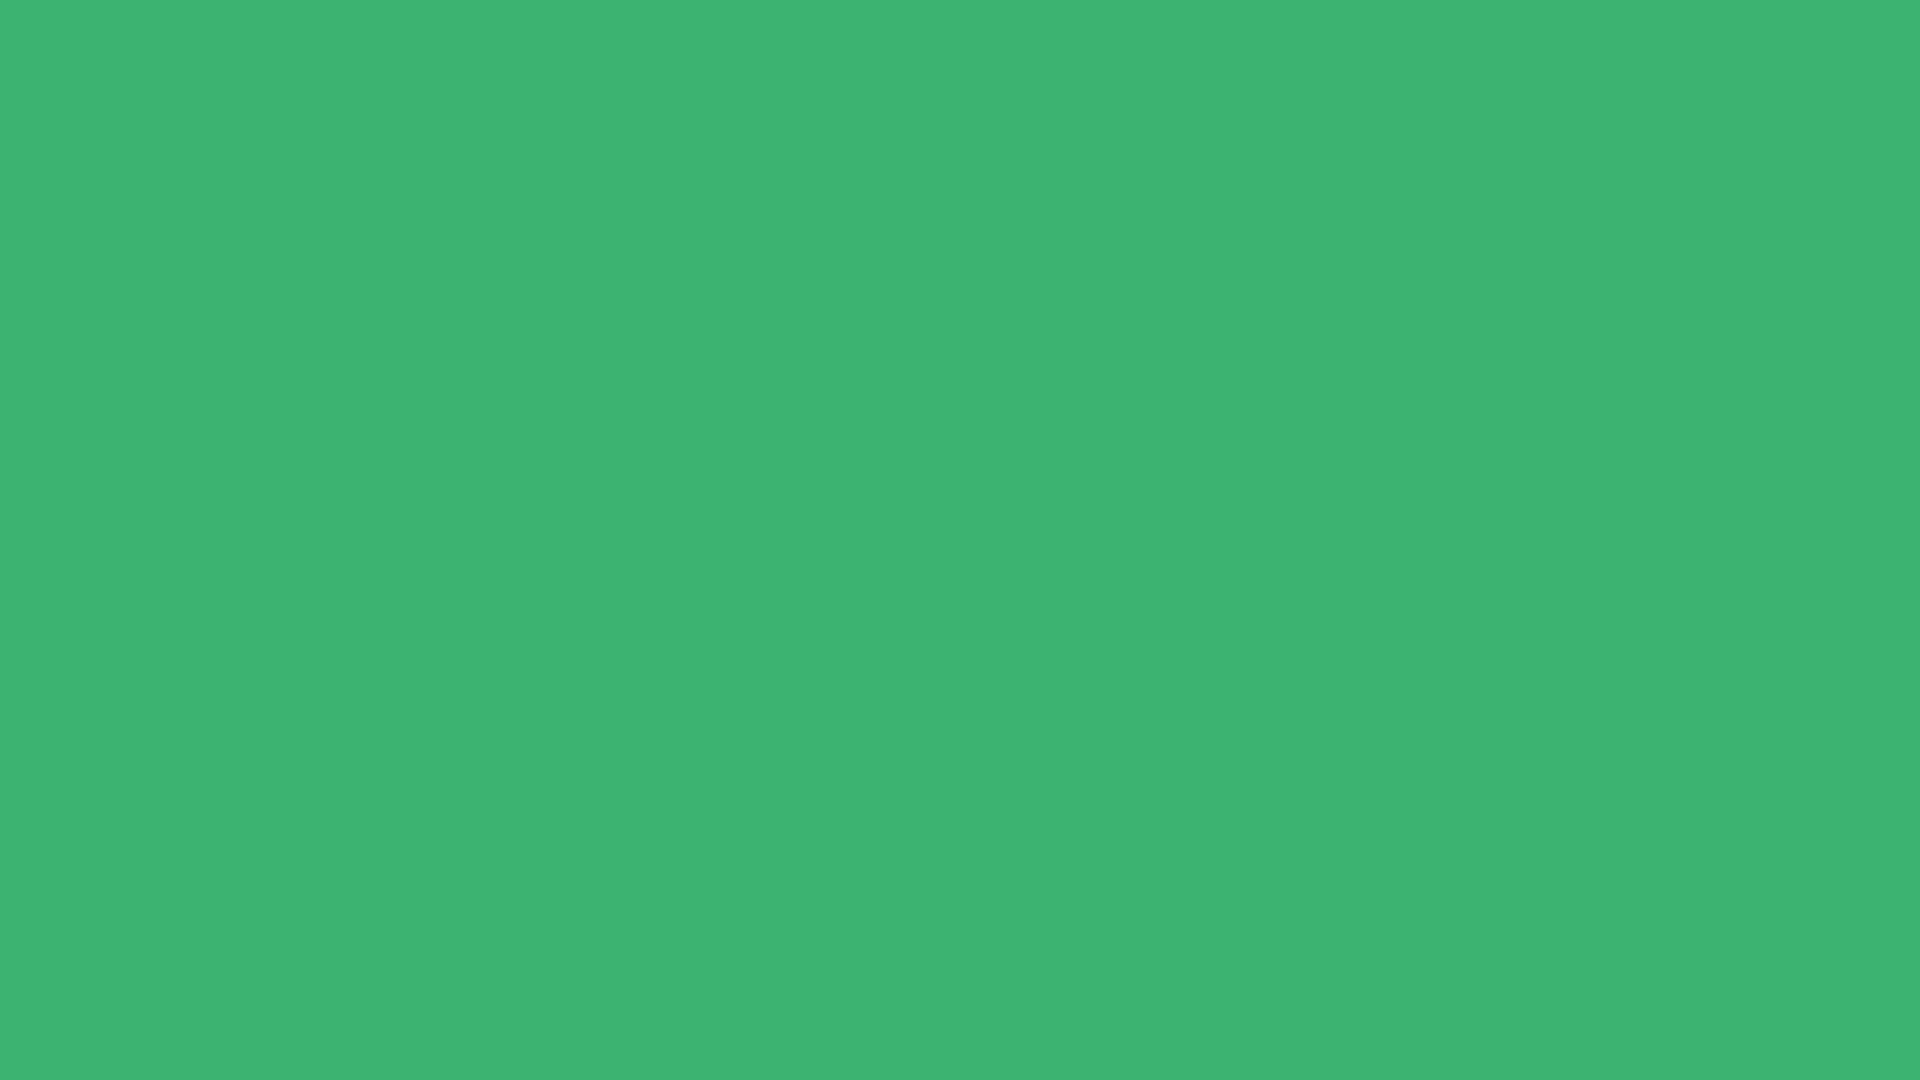 1920x1080 Medium Sea Green Solid Color Background